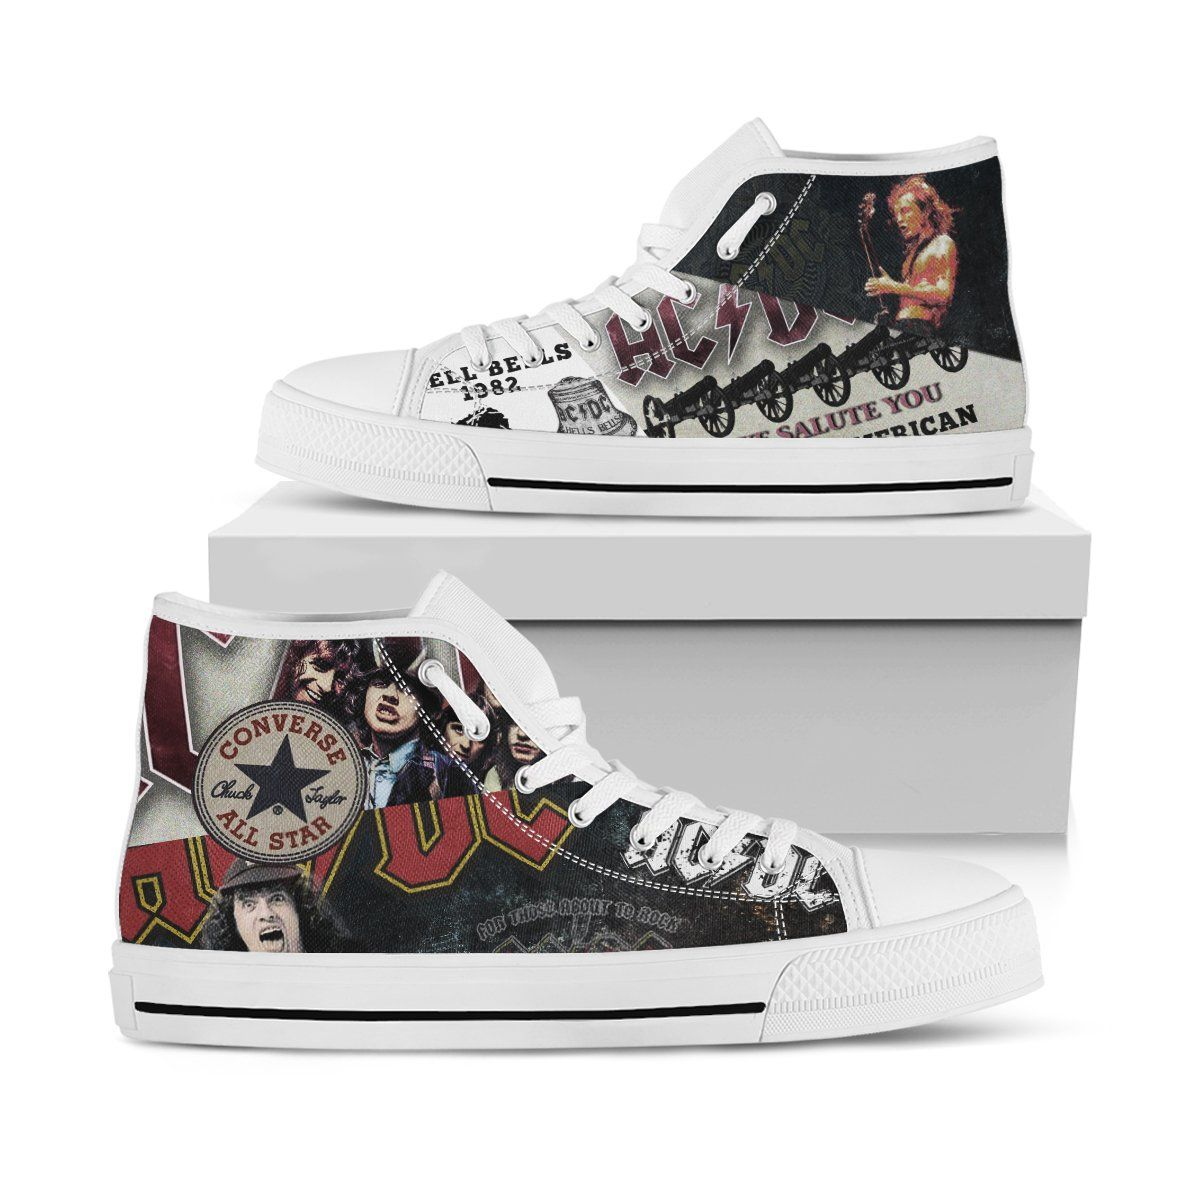 flexible Tratamiento chisme  ACDC Shoes - For Those About To Rock art We Salute You - High Top -  NinePair™ | Acdc shoes, Rock shoes, Shoes